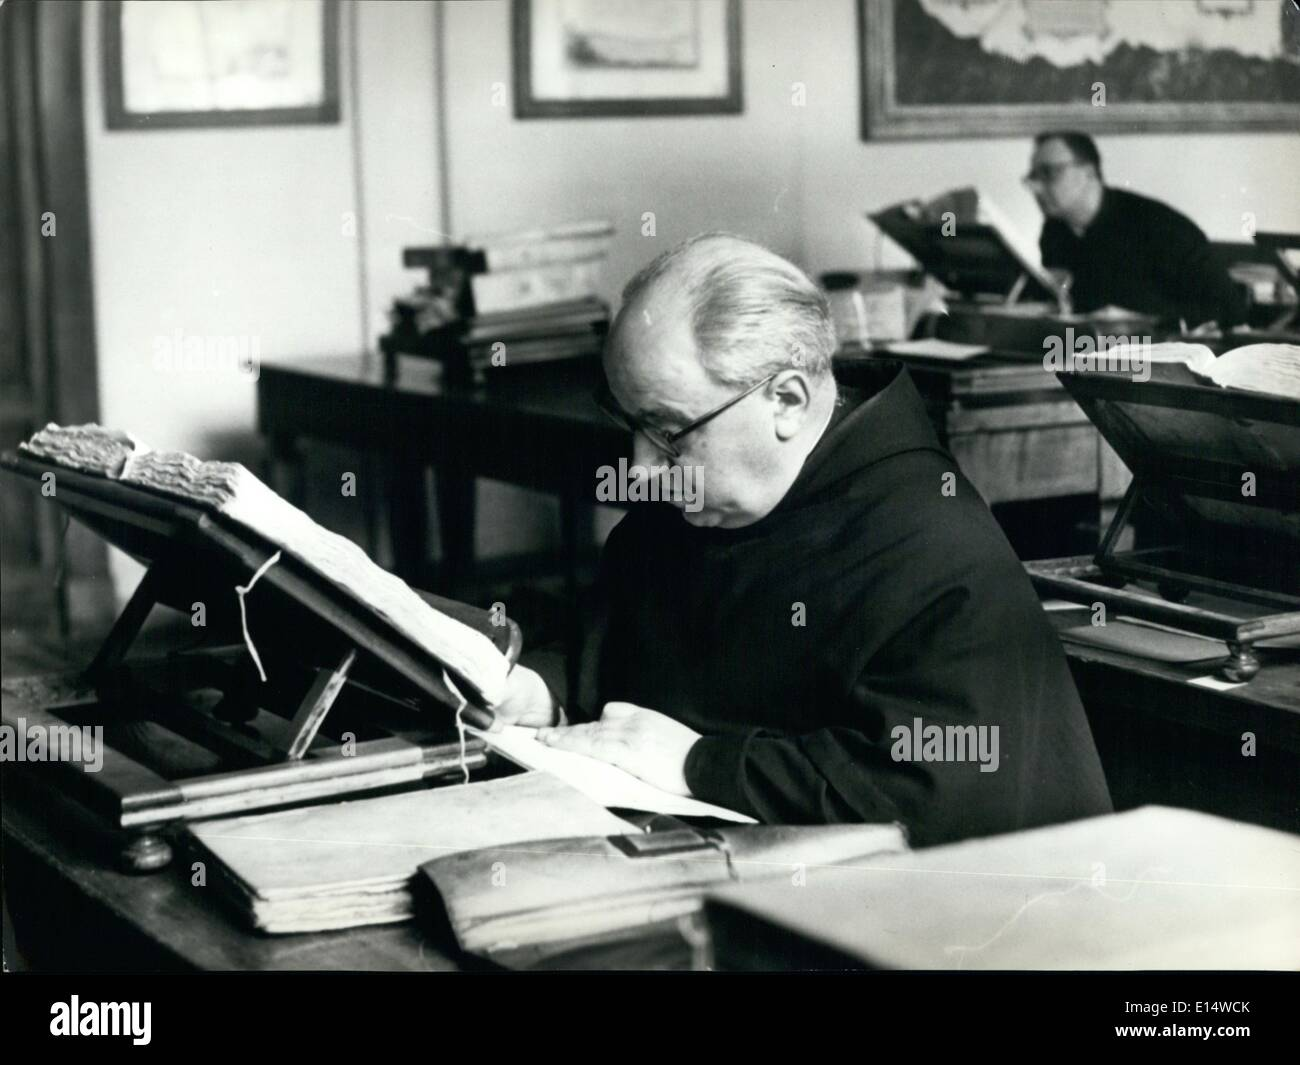 Apr. 18, 2012 - Reading room of the Vatican secret archive. - Stock Image